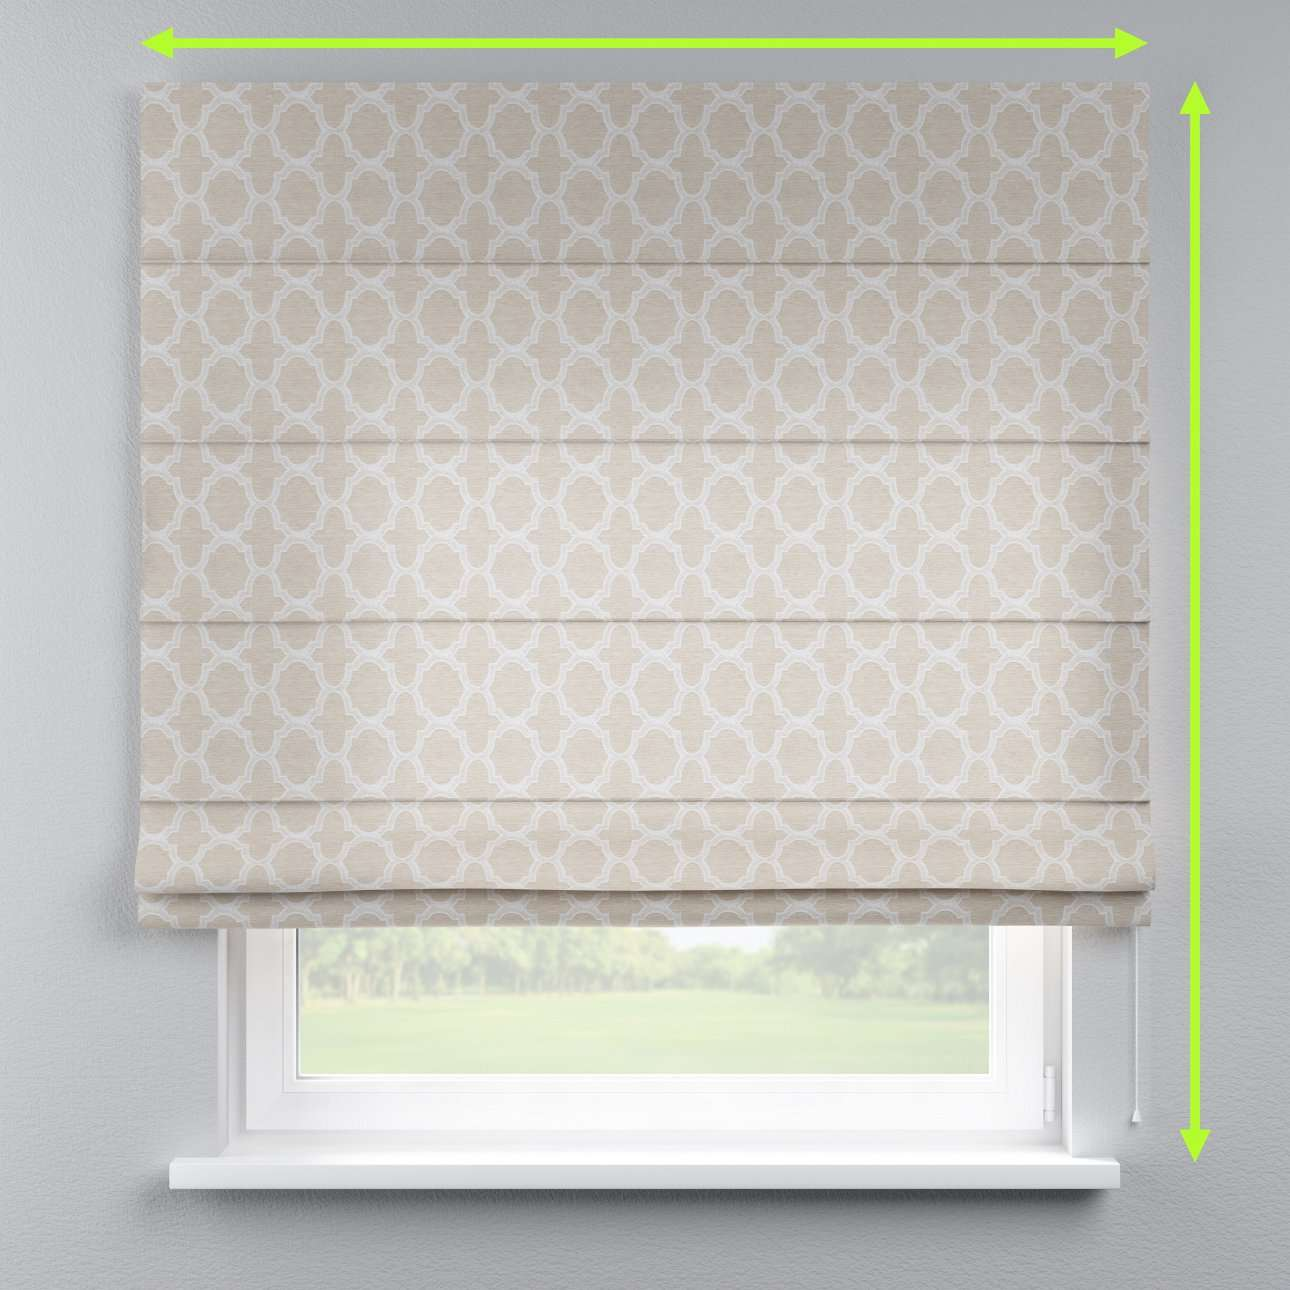 Lined roman blind in collection Rustica, fabric: 138-25